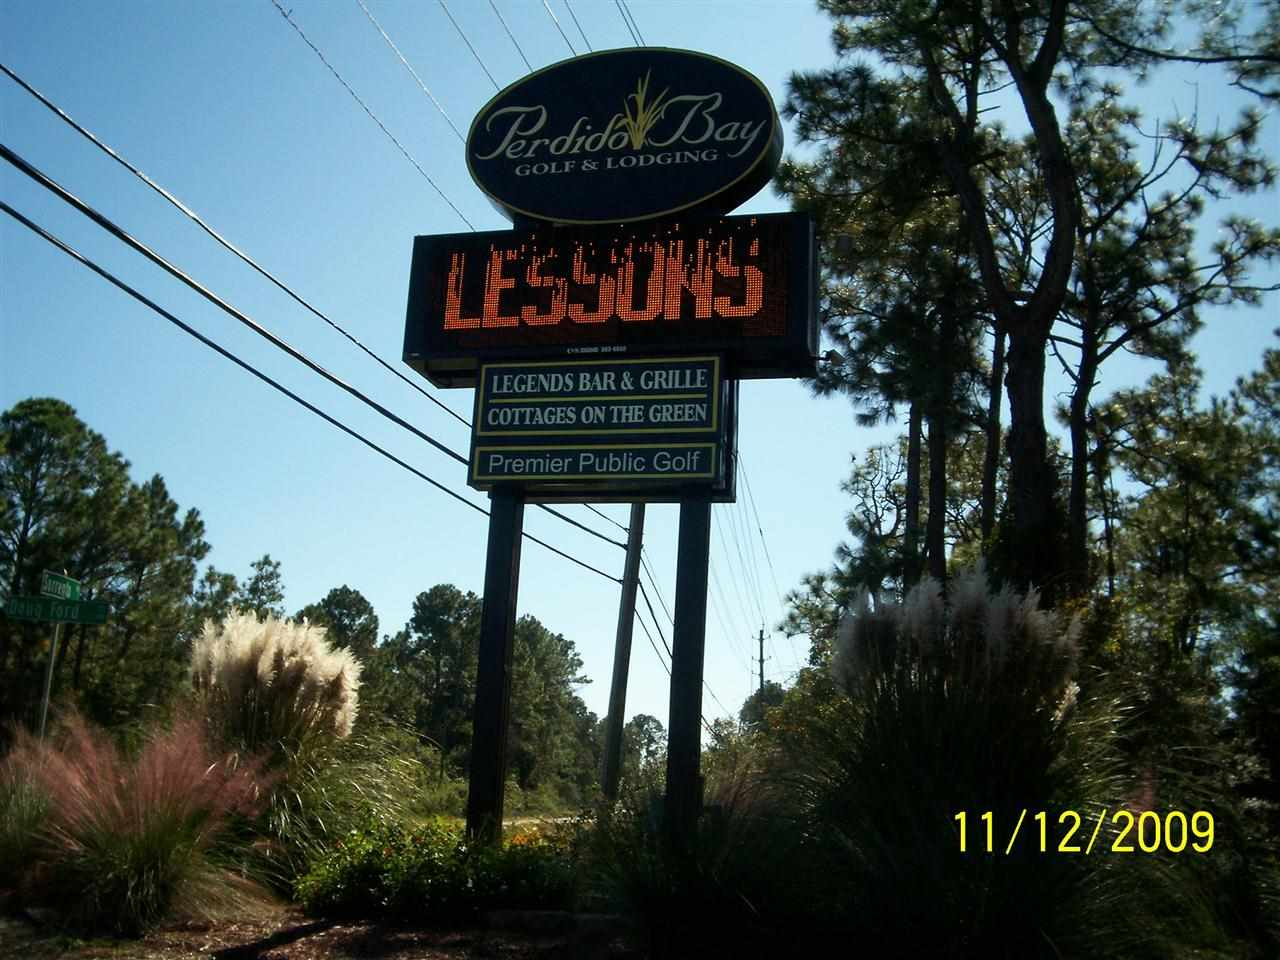 Lot 11 CHOCTAW AVE PENSACOLA, FL 32507 457671